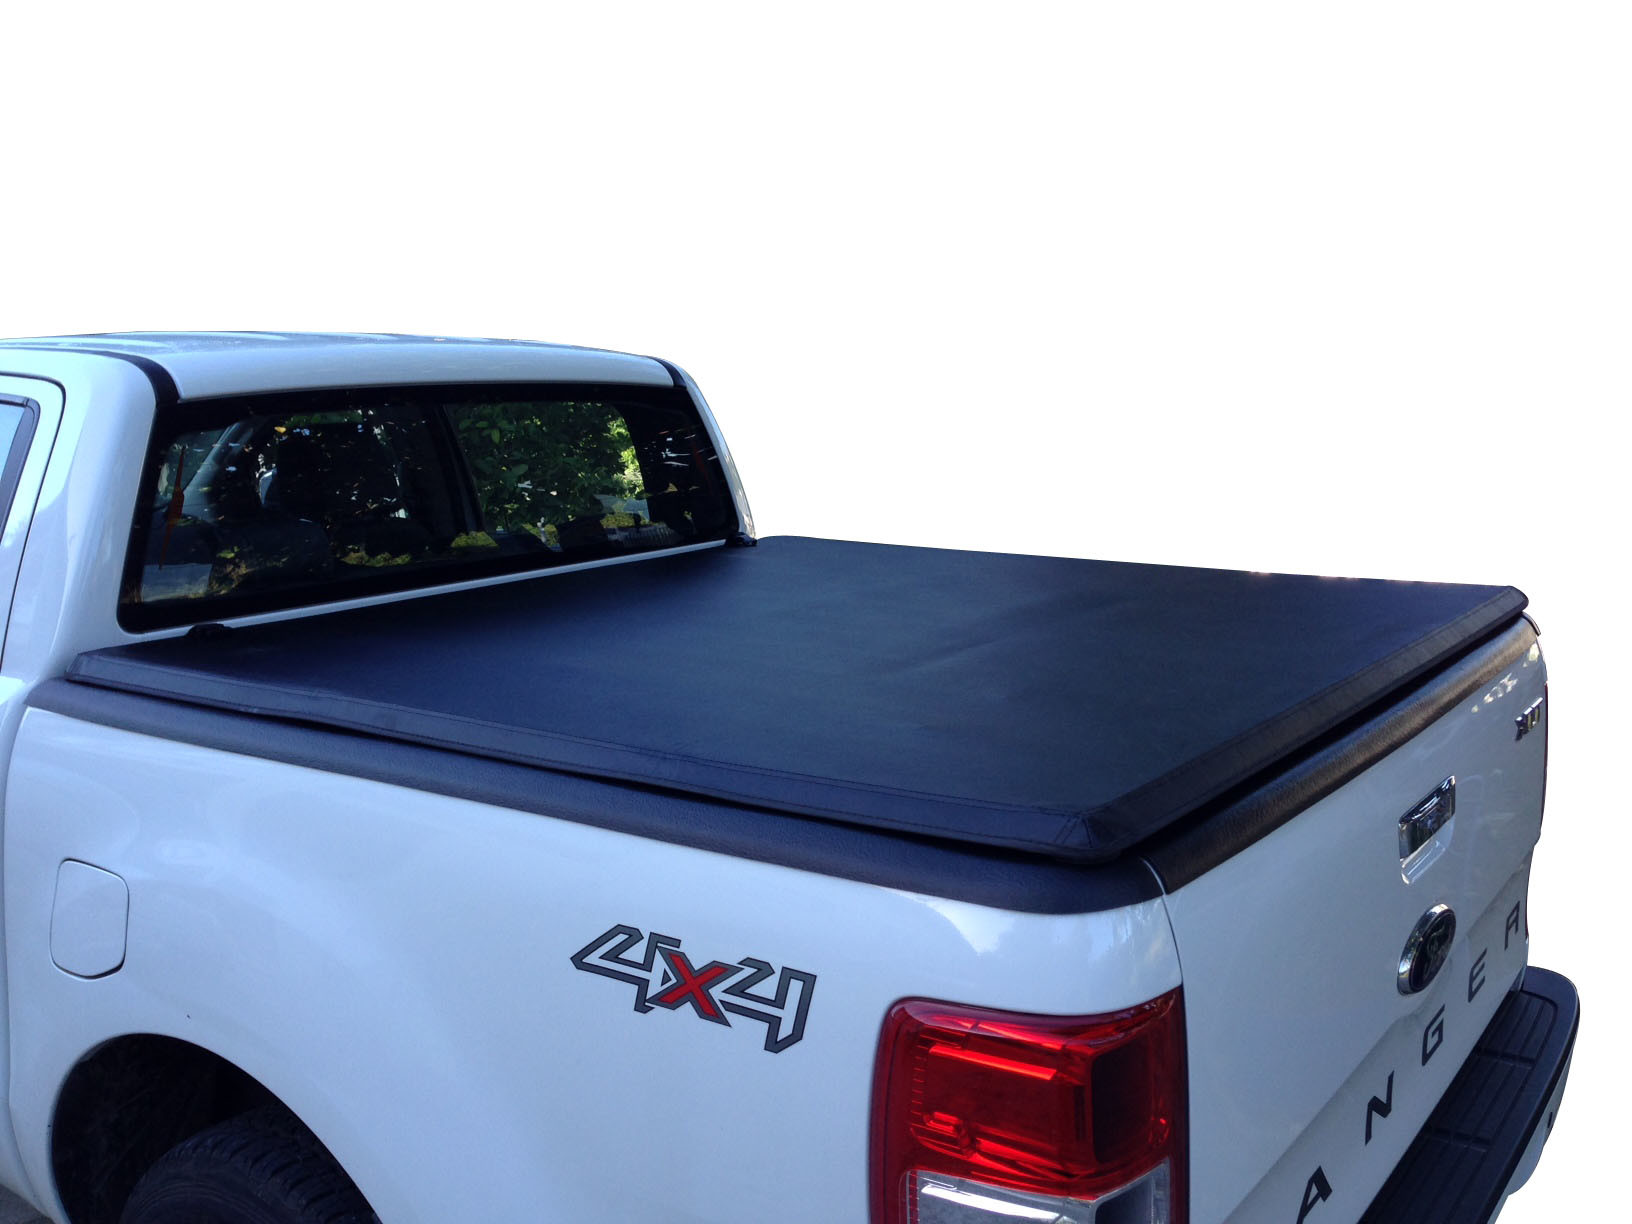 China Soft Tri Fold Tonneau Cover For Ford Ranger Double Cab 12 15 China Tonneau Cover Deck Cover